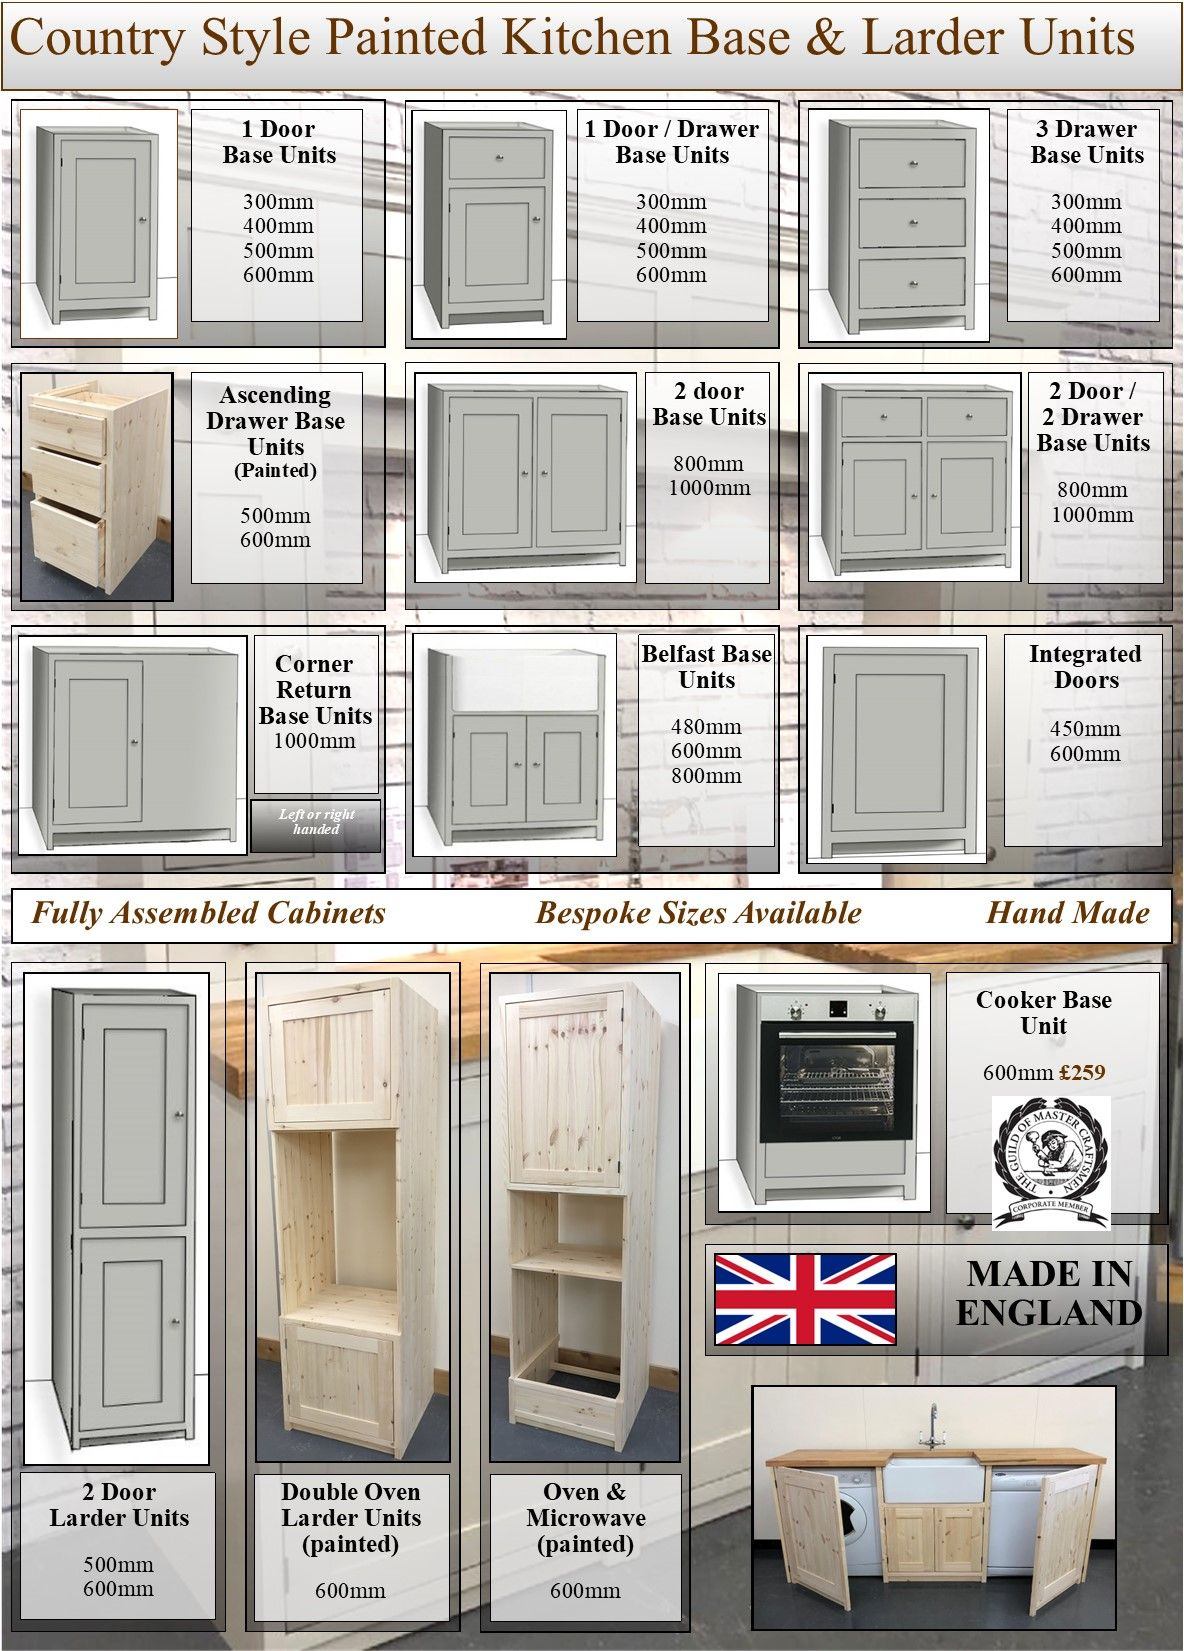 & Country Style Painted 1 Glazed Door Wall Kitchen Cabinet 600mm